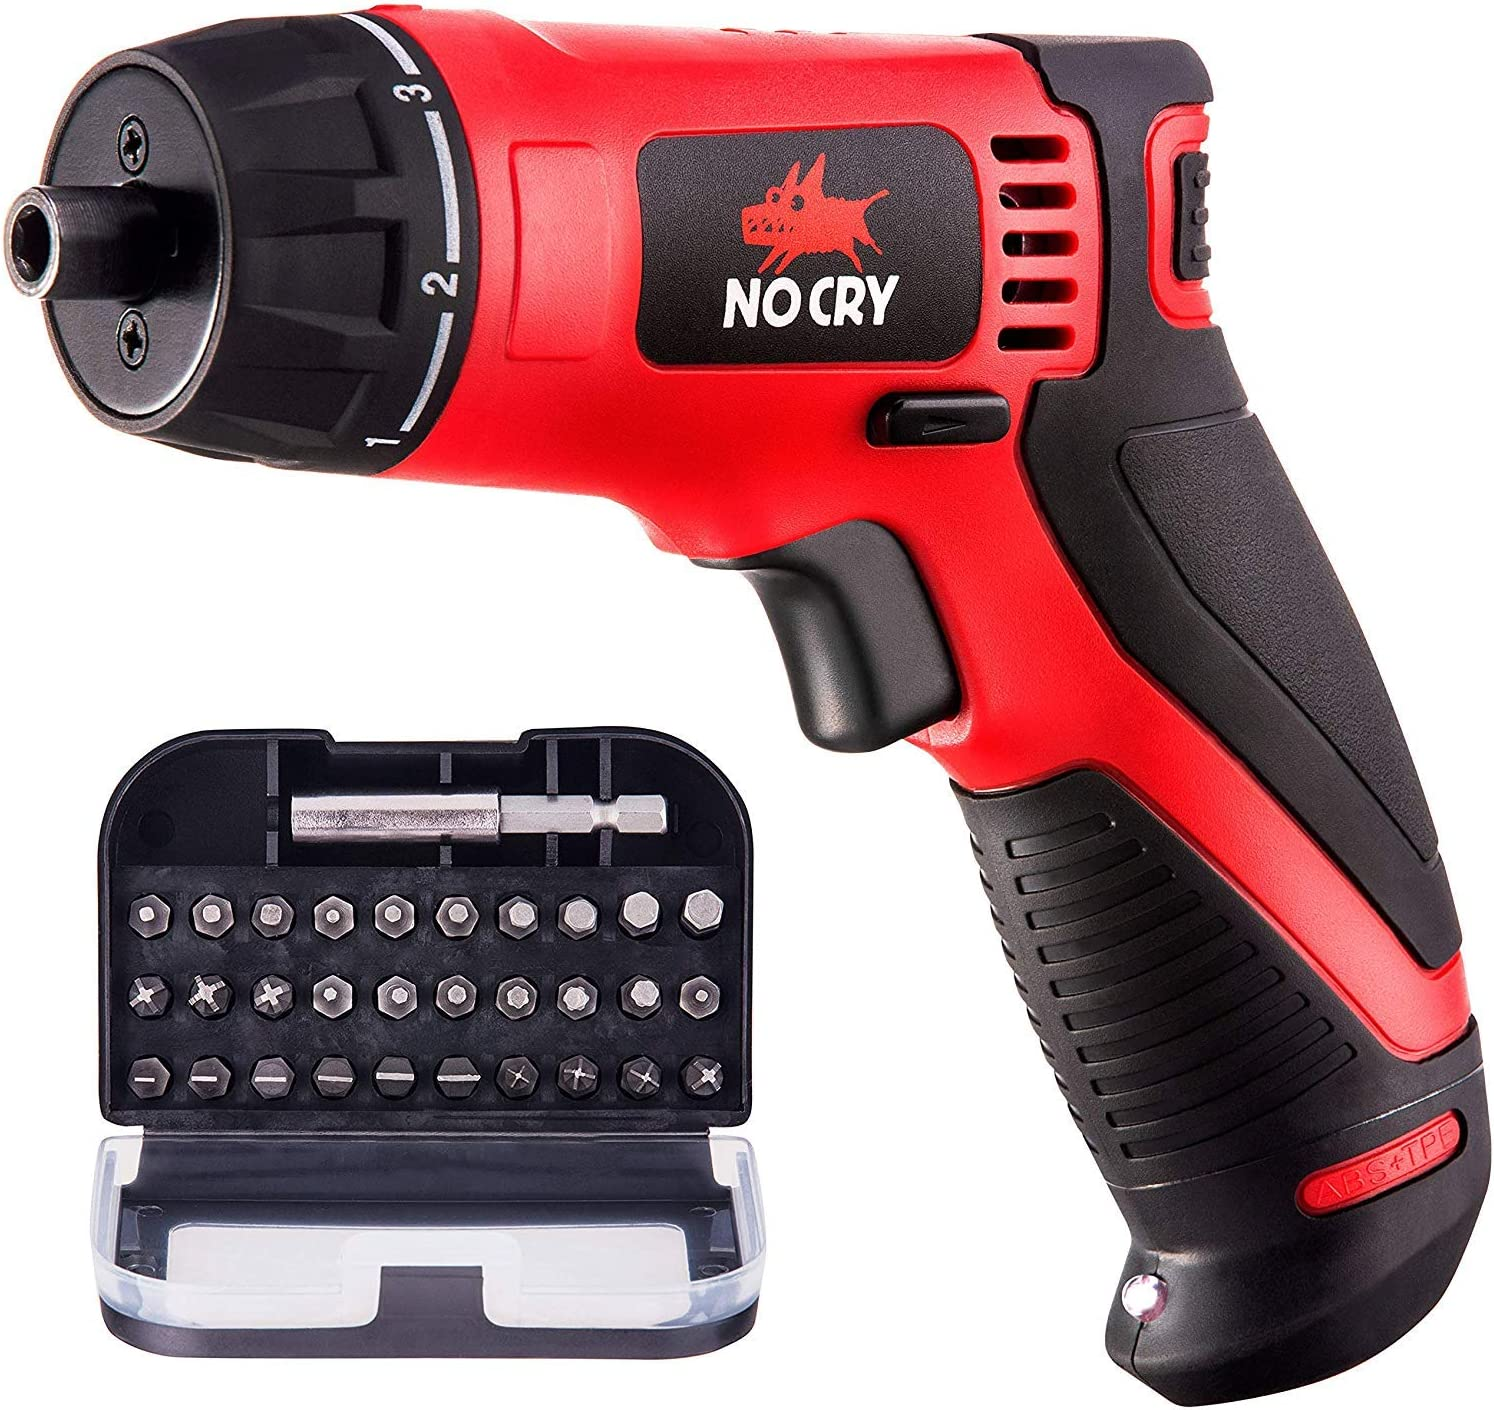 Nocry Cordless Electric Screwdriver